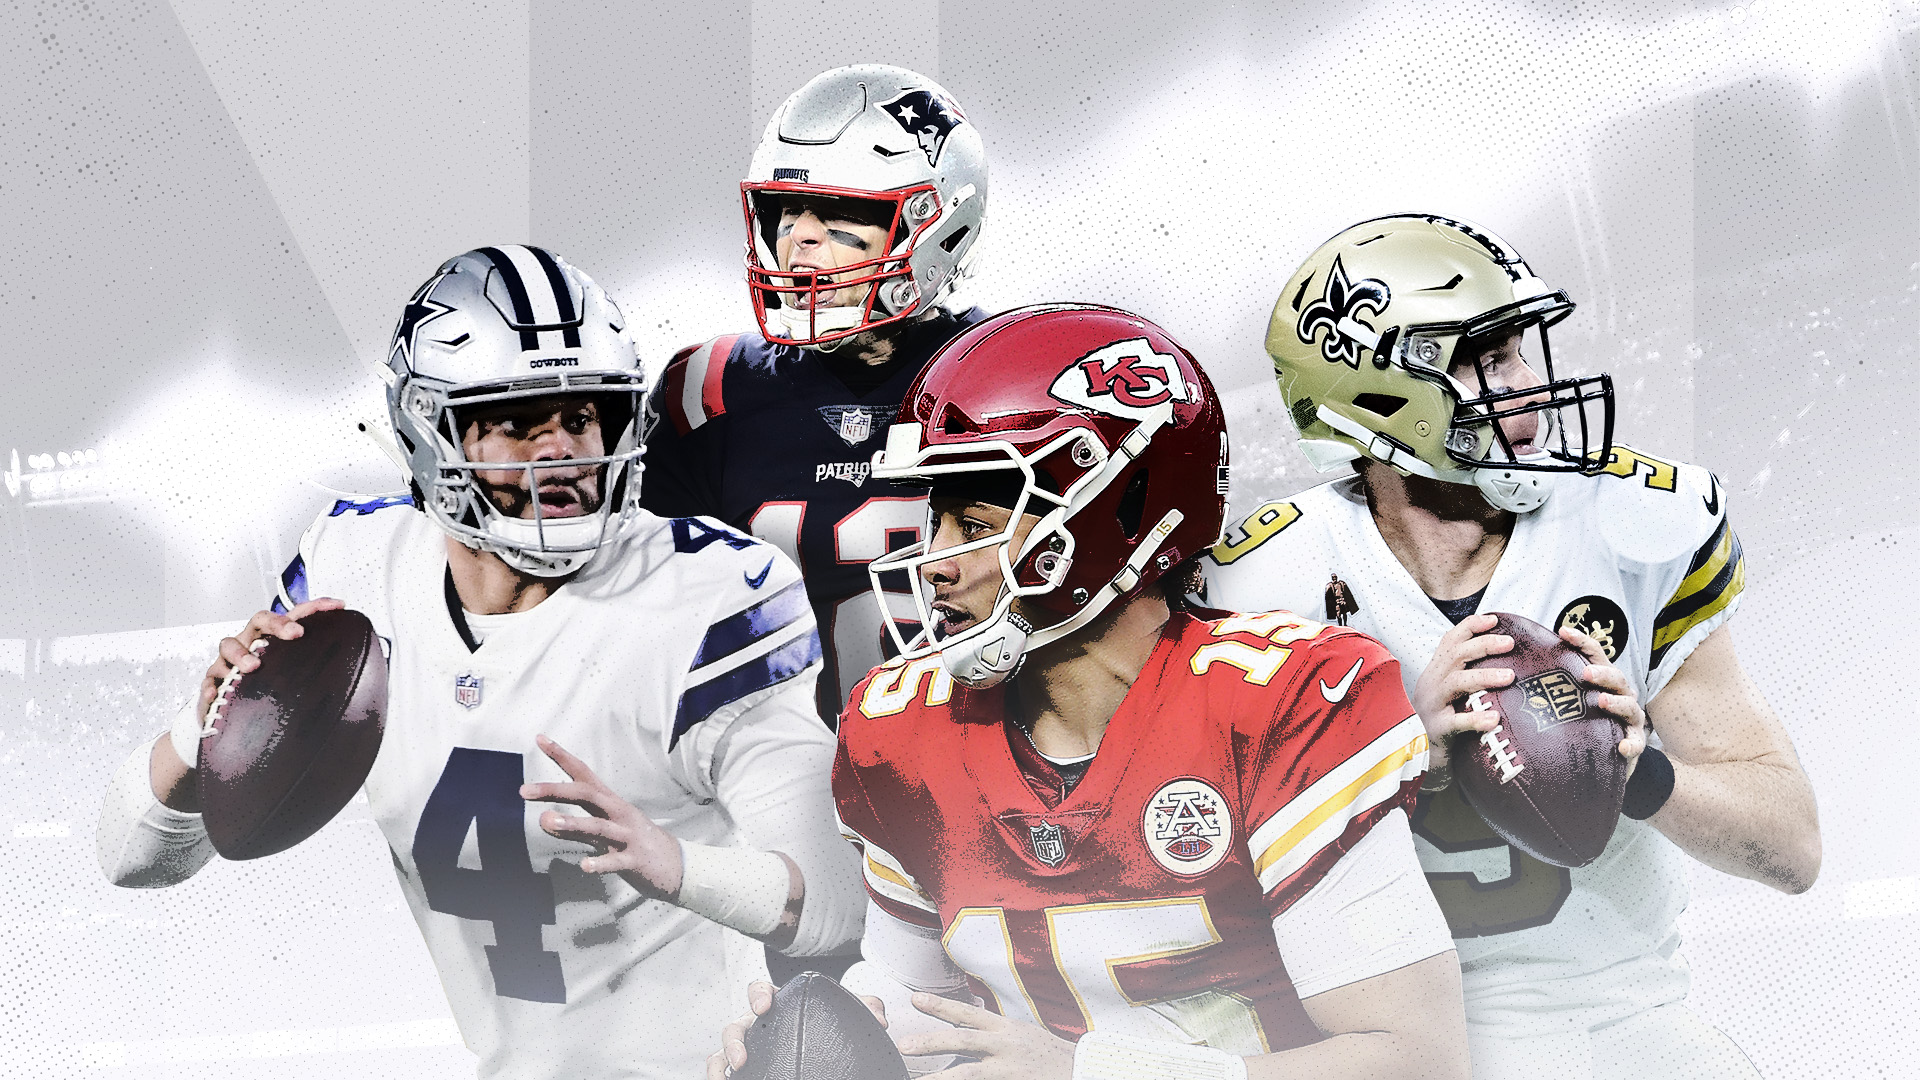 NFL predictions 2019: Final standings, playoff projections, Super Bowl 54 pick